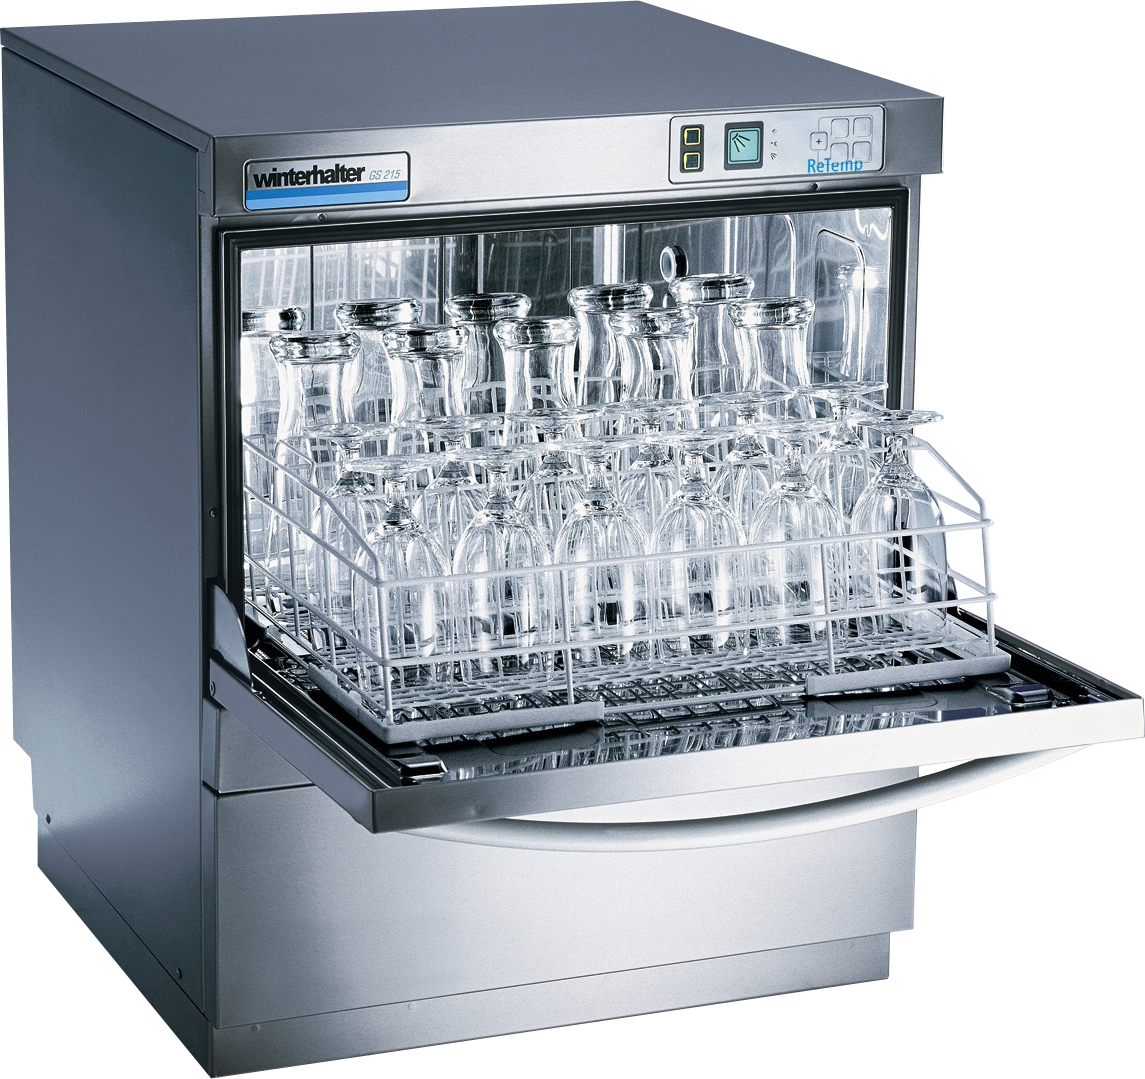 Commercial Dishwashers Amp Glass Washers At Low Prices